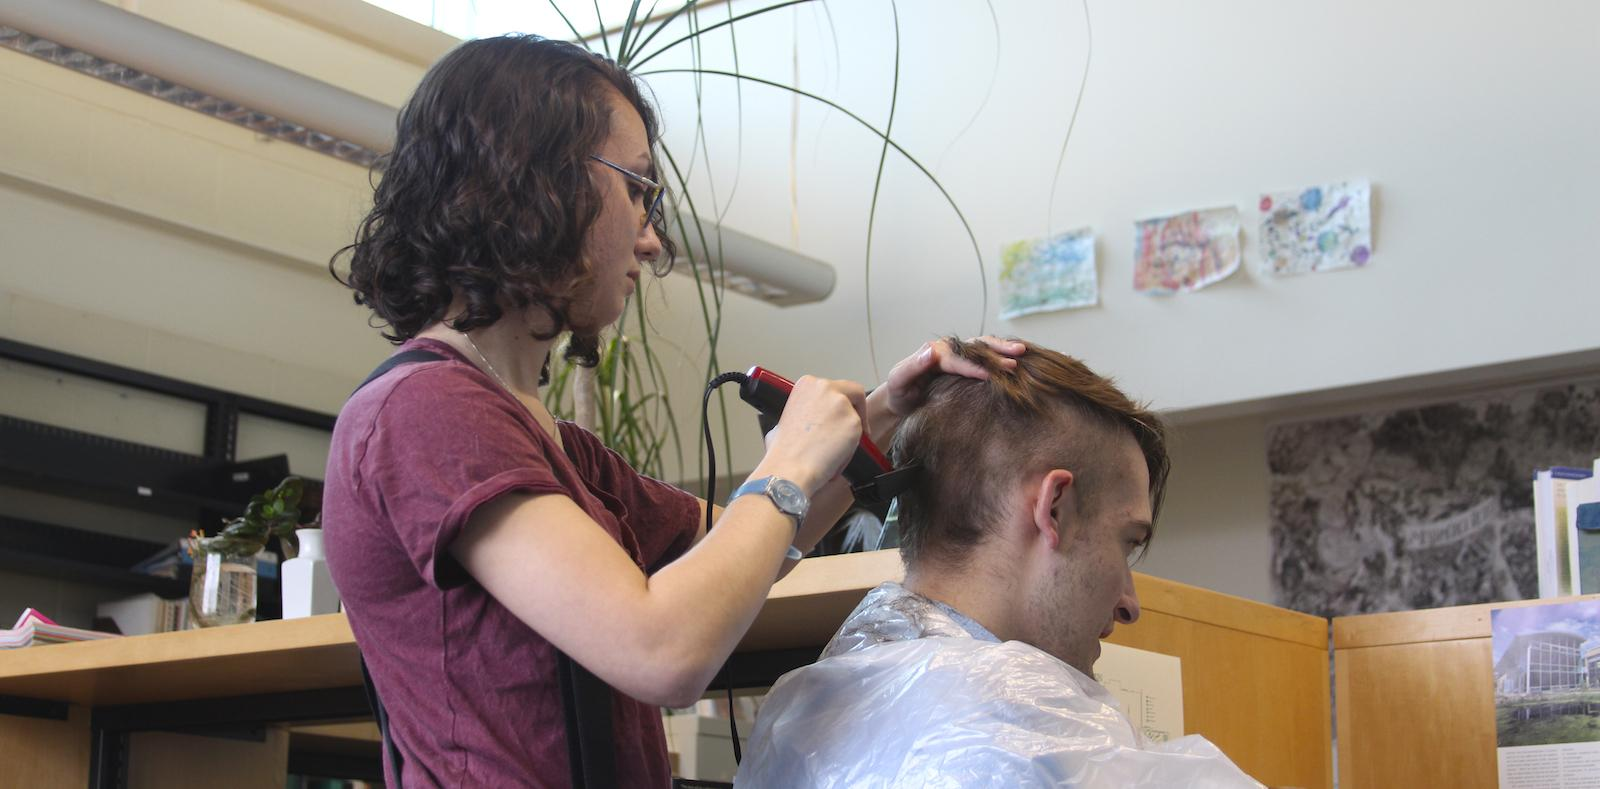 One student cuts another's hair with electric trimmers